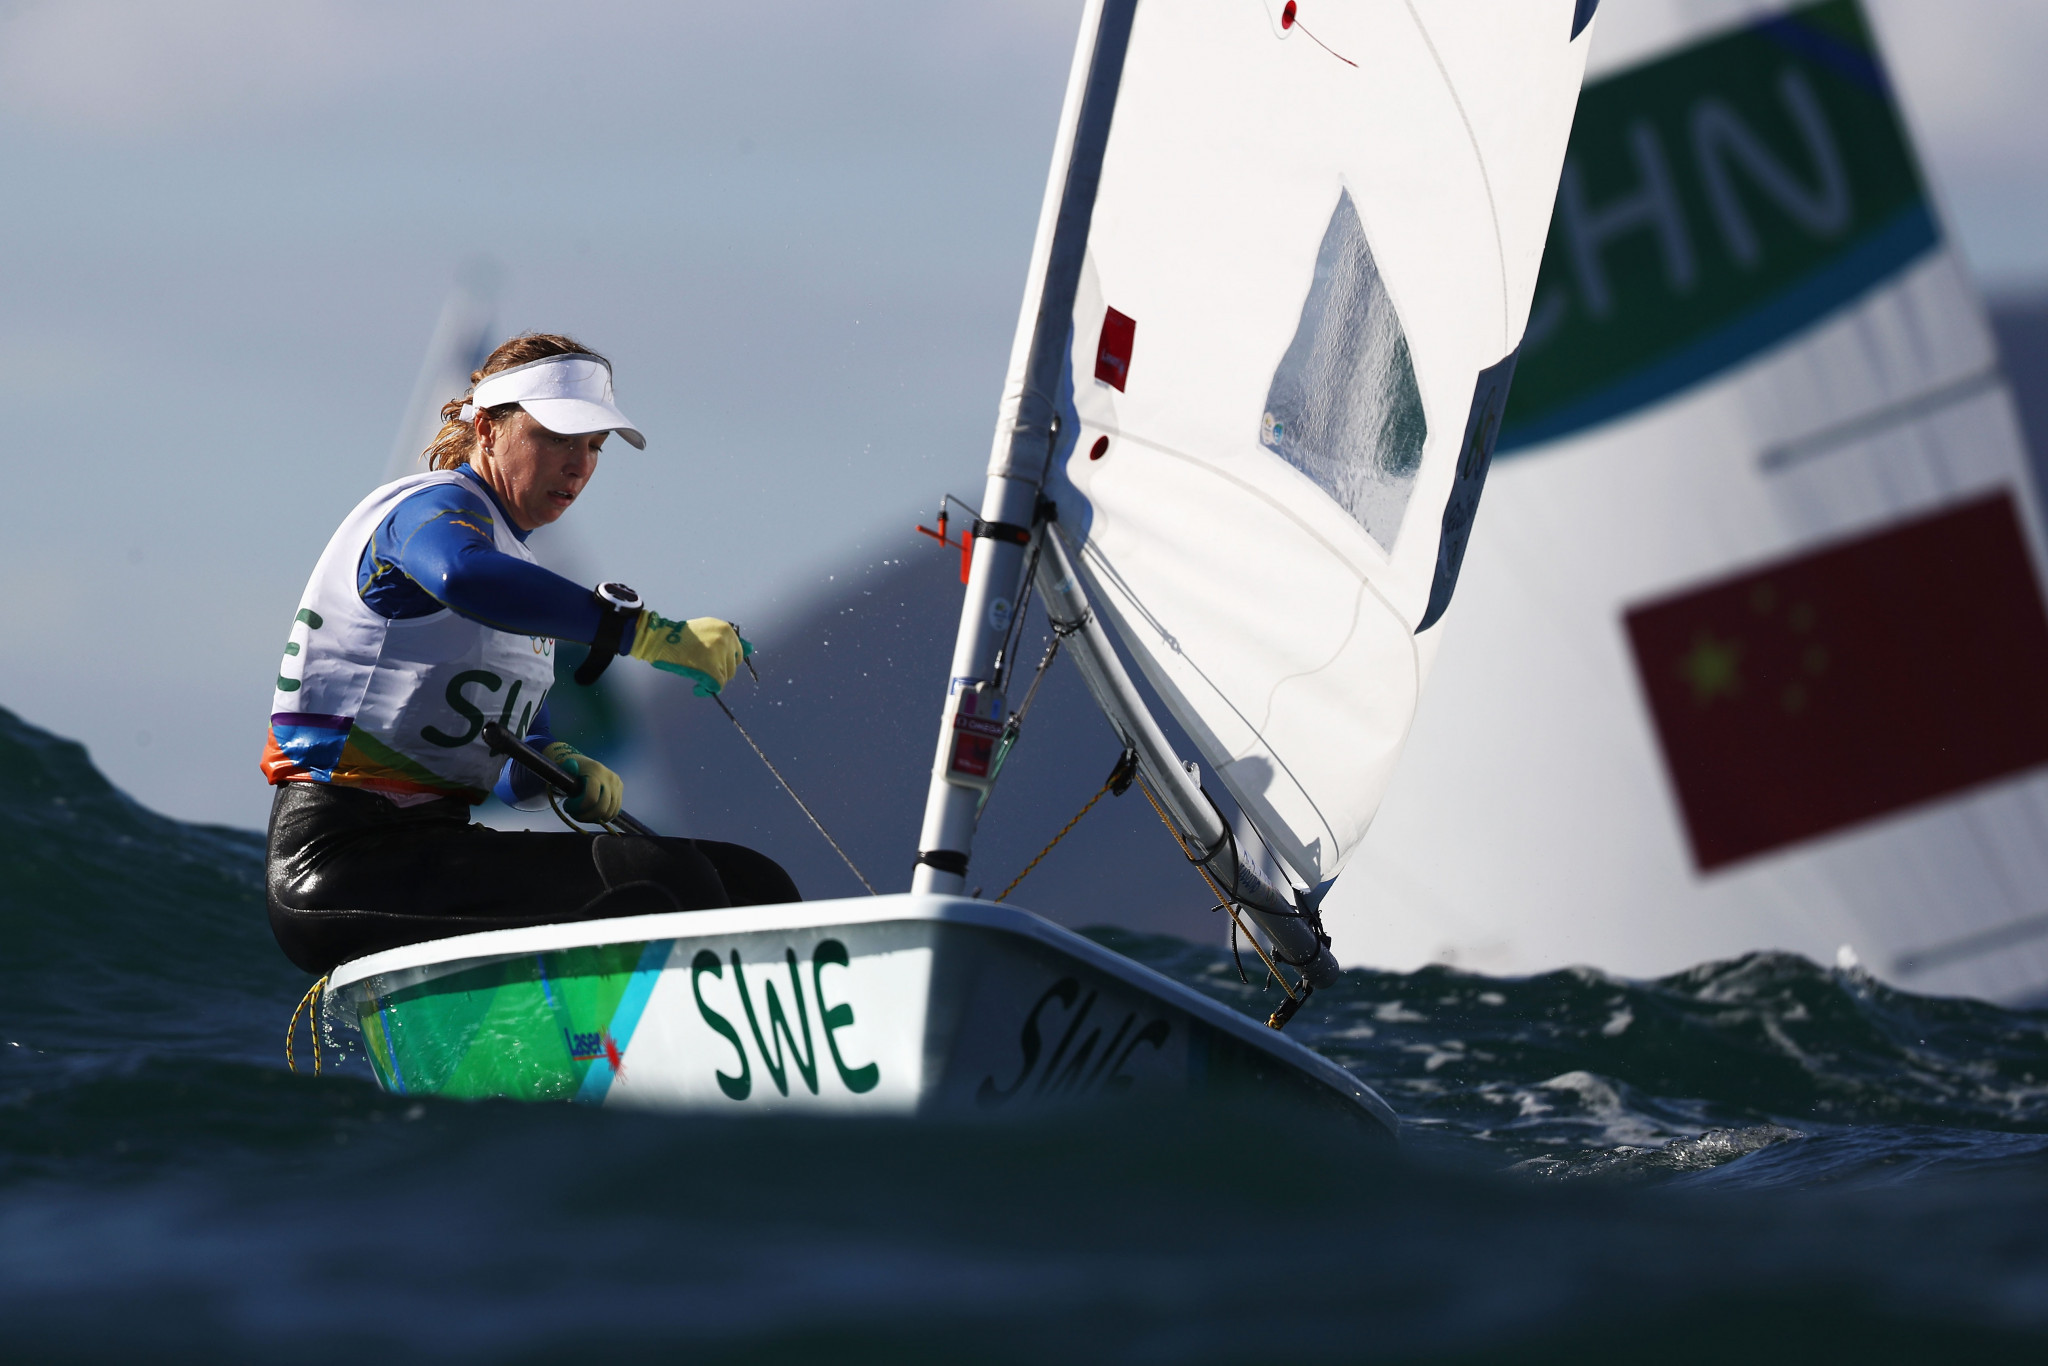 Josefin Olsson of Sweden leads at the ILCA Laser Radial Women's World Championship ©Getty Images